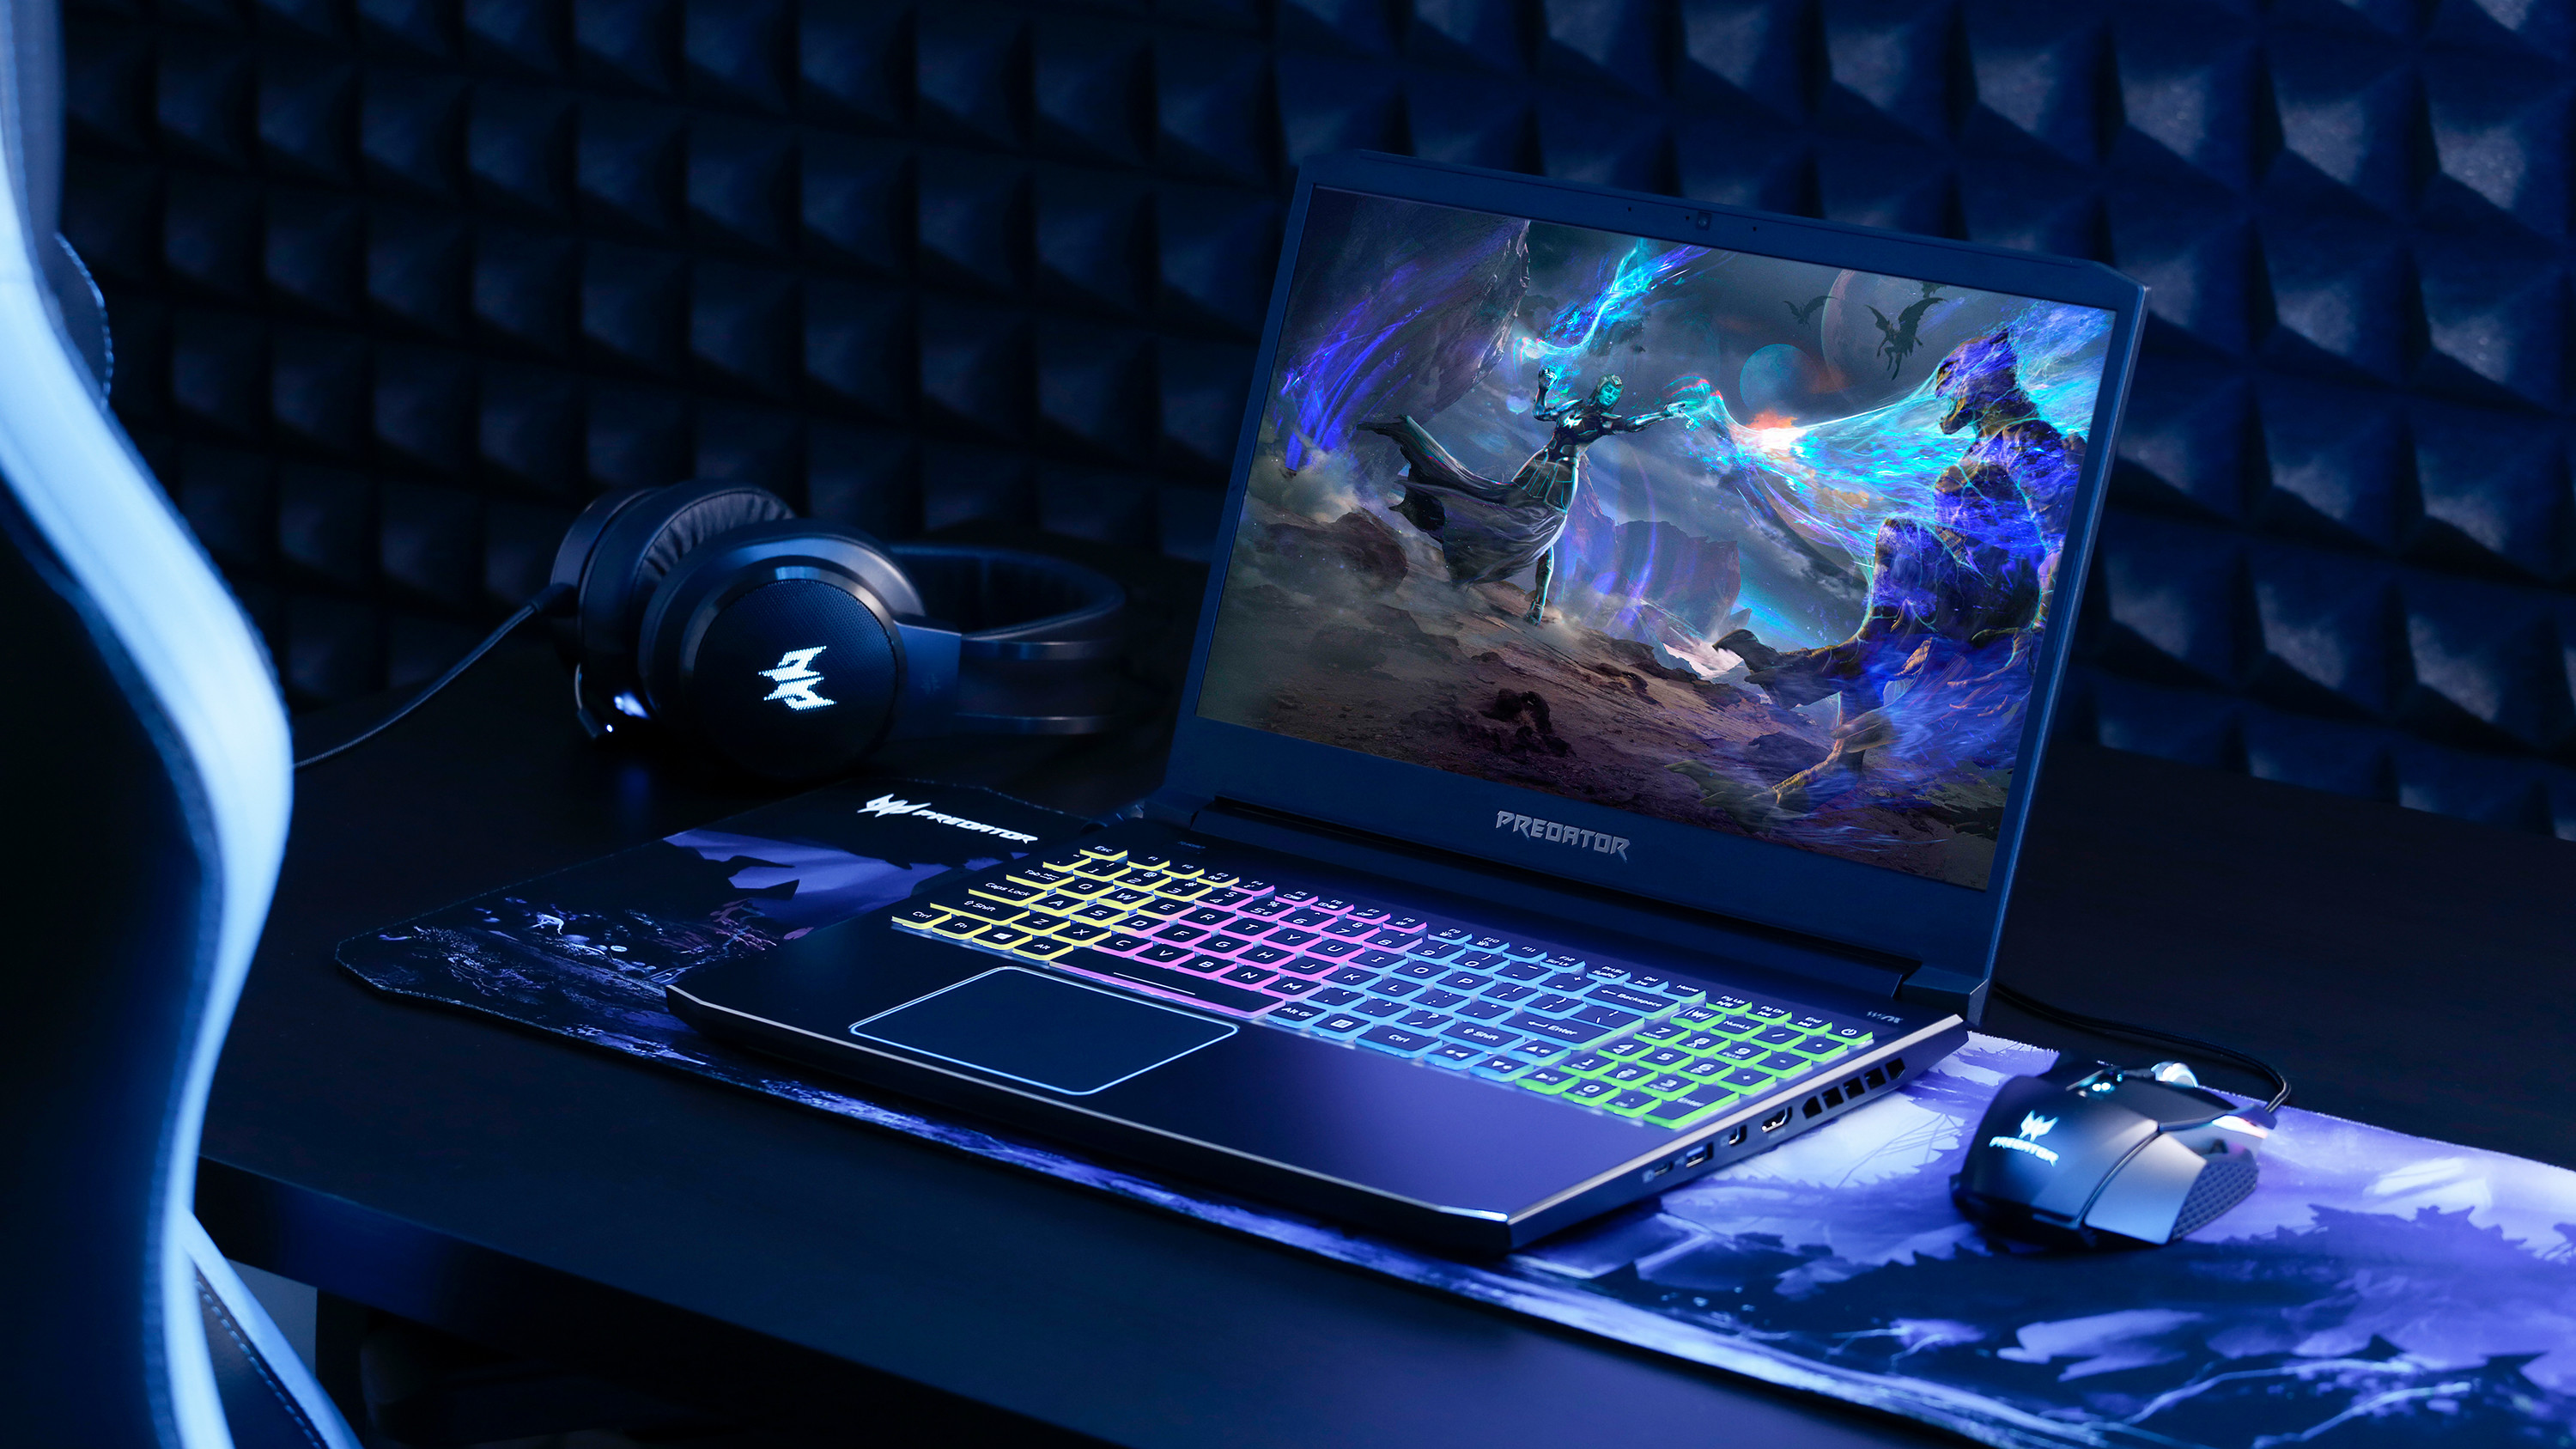 Gamers, here's a definitive list of the best gaming laptops of 2019